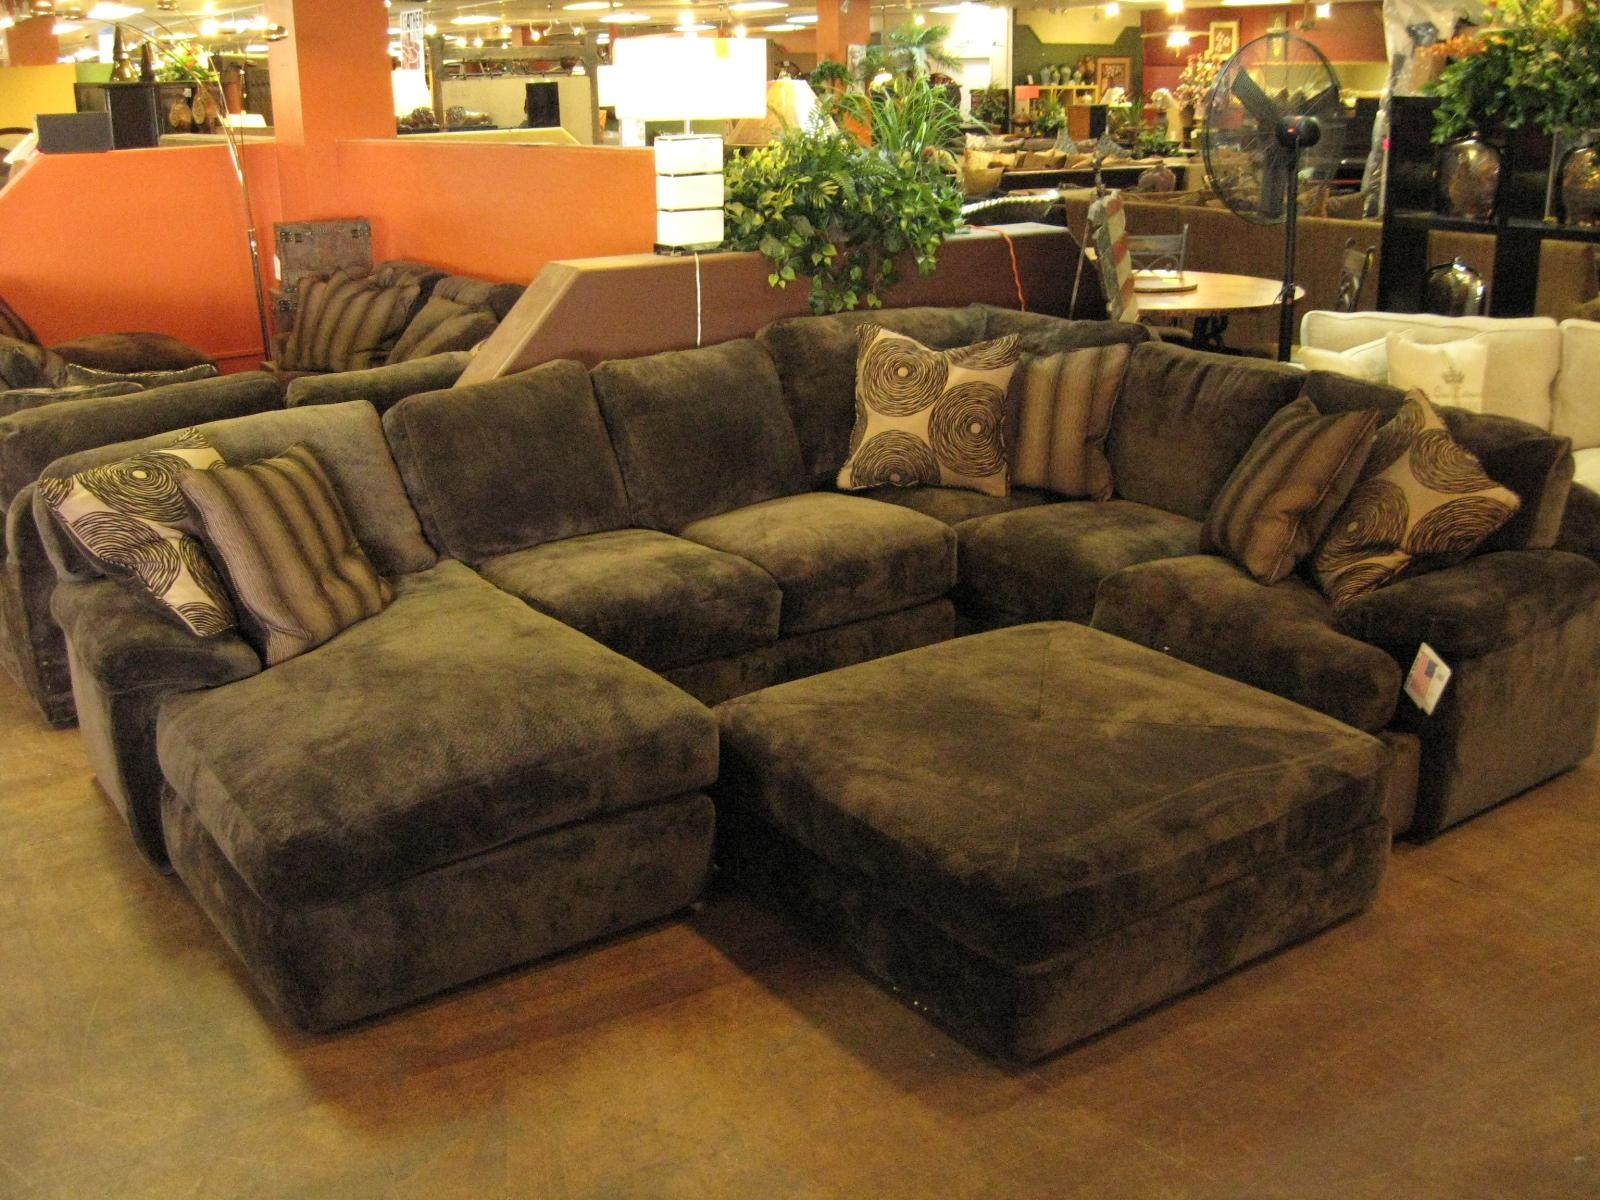 Large Sectional Sofas – Helpformycredit Inside Large Comfortable Sectional Sofas (Image 14 of 20)